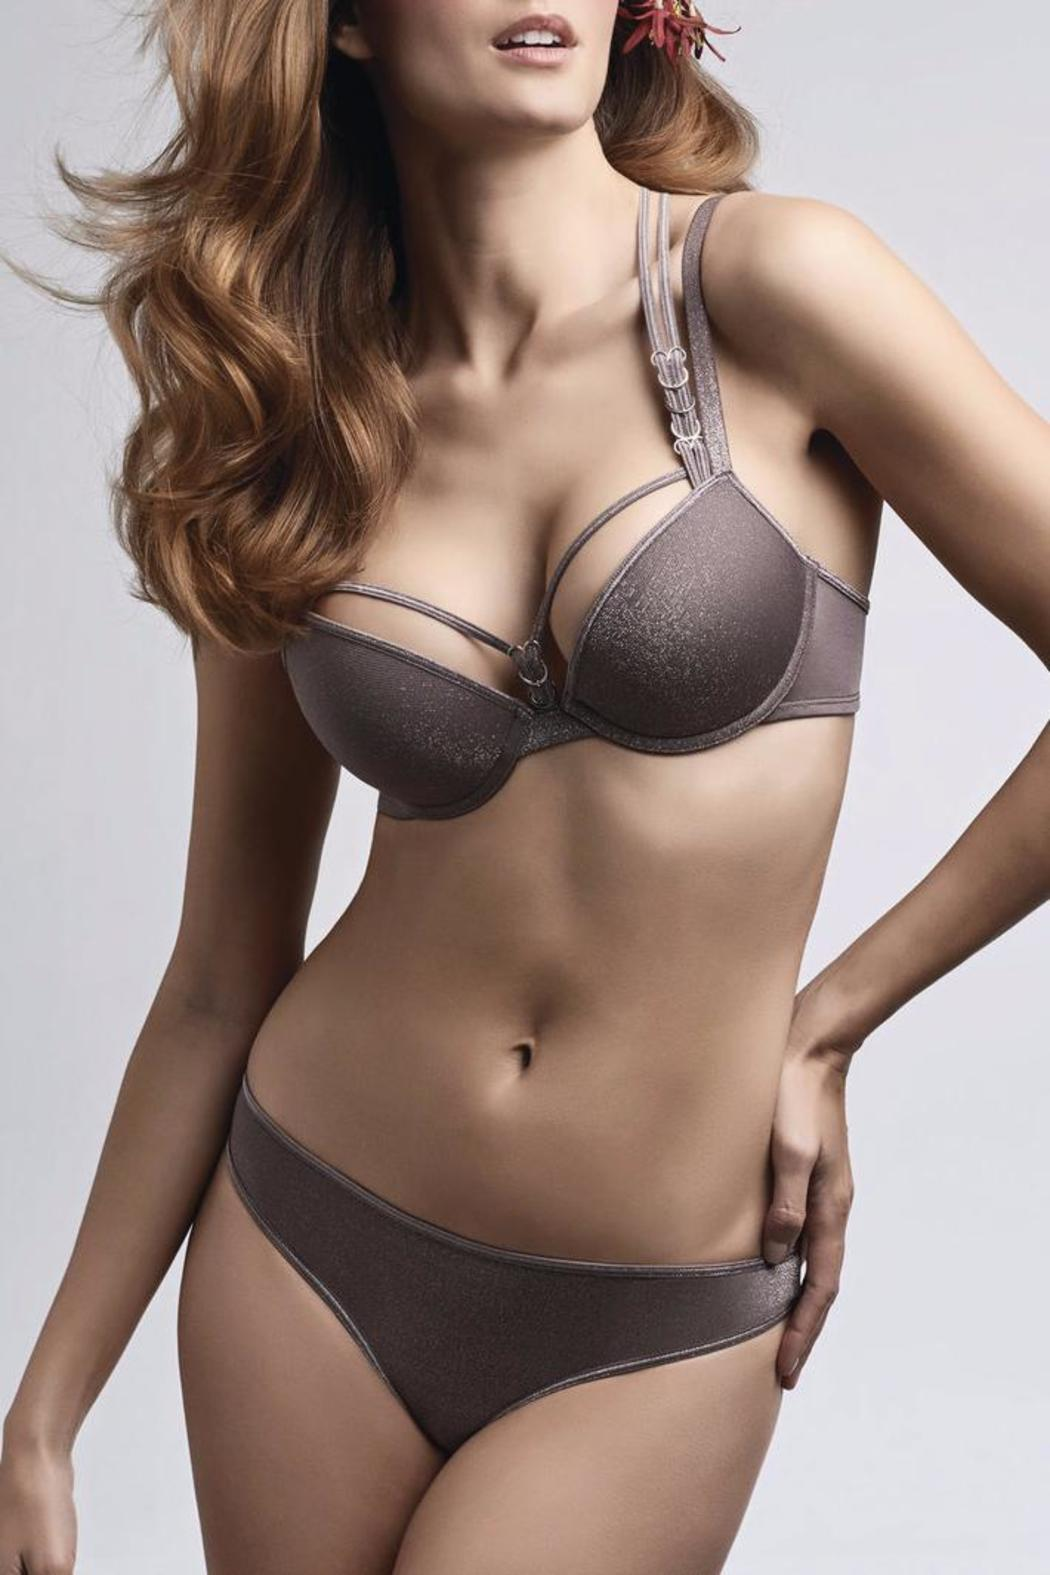 01456f57401be marlies dekkers Manjira Padded Pushup Bra from Canada by Esprit de ...